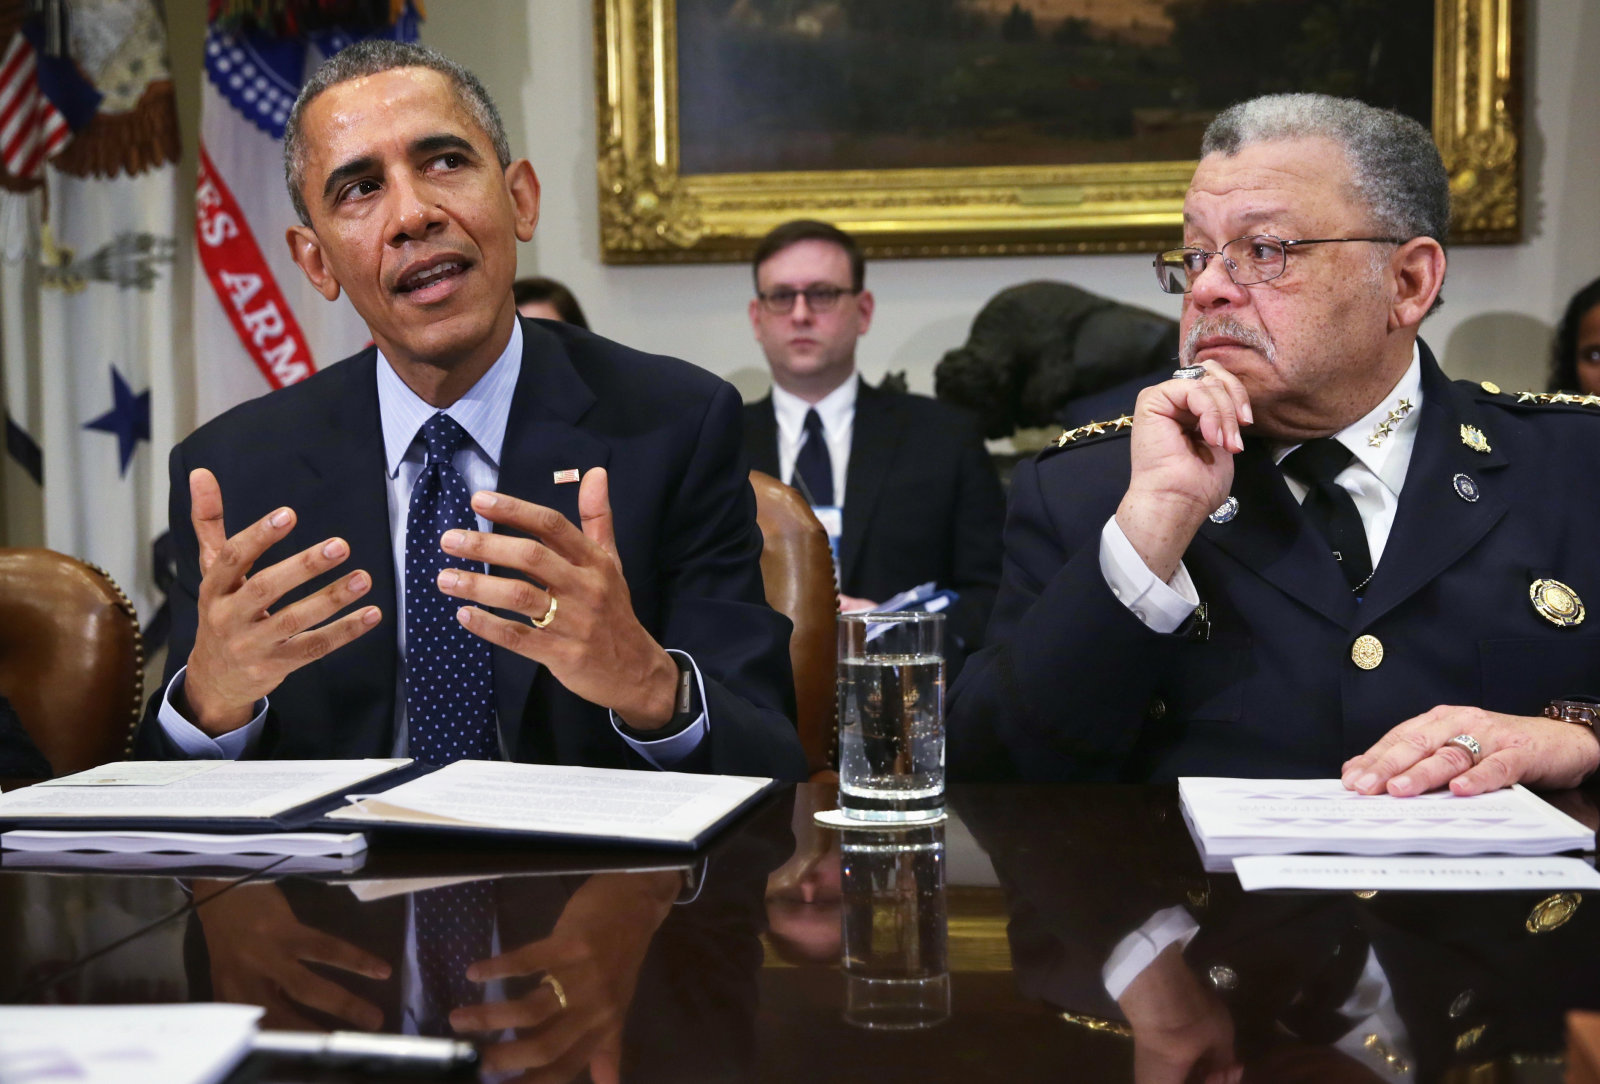 Obama Meets With Task Force On 21st Century Policing At White House